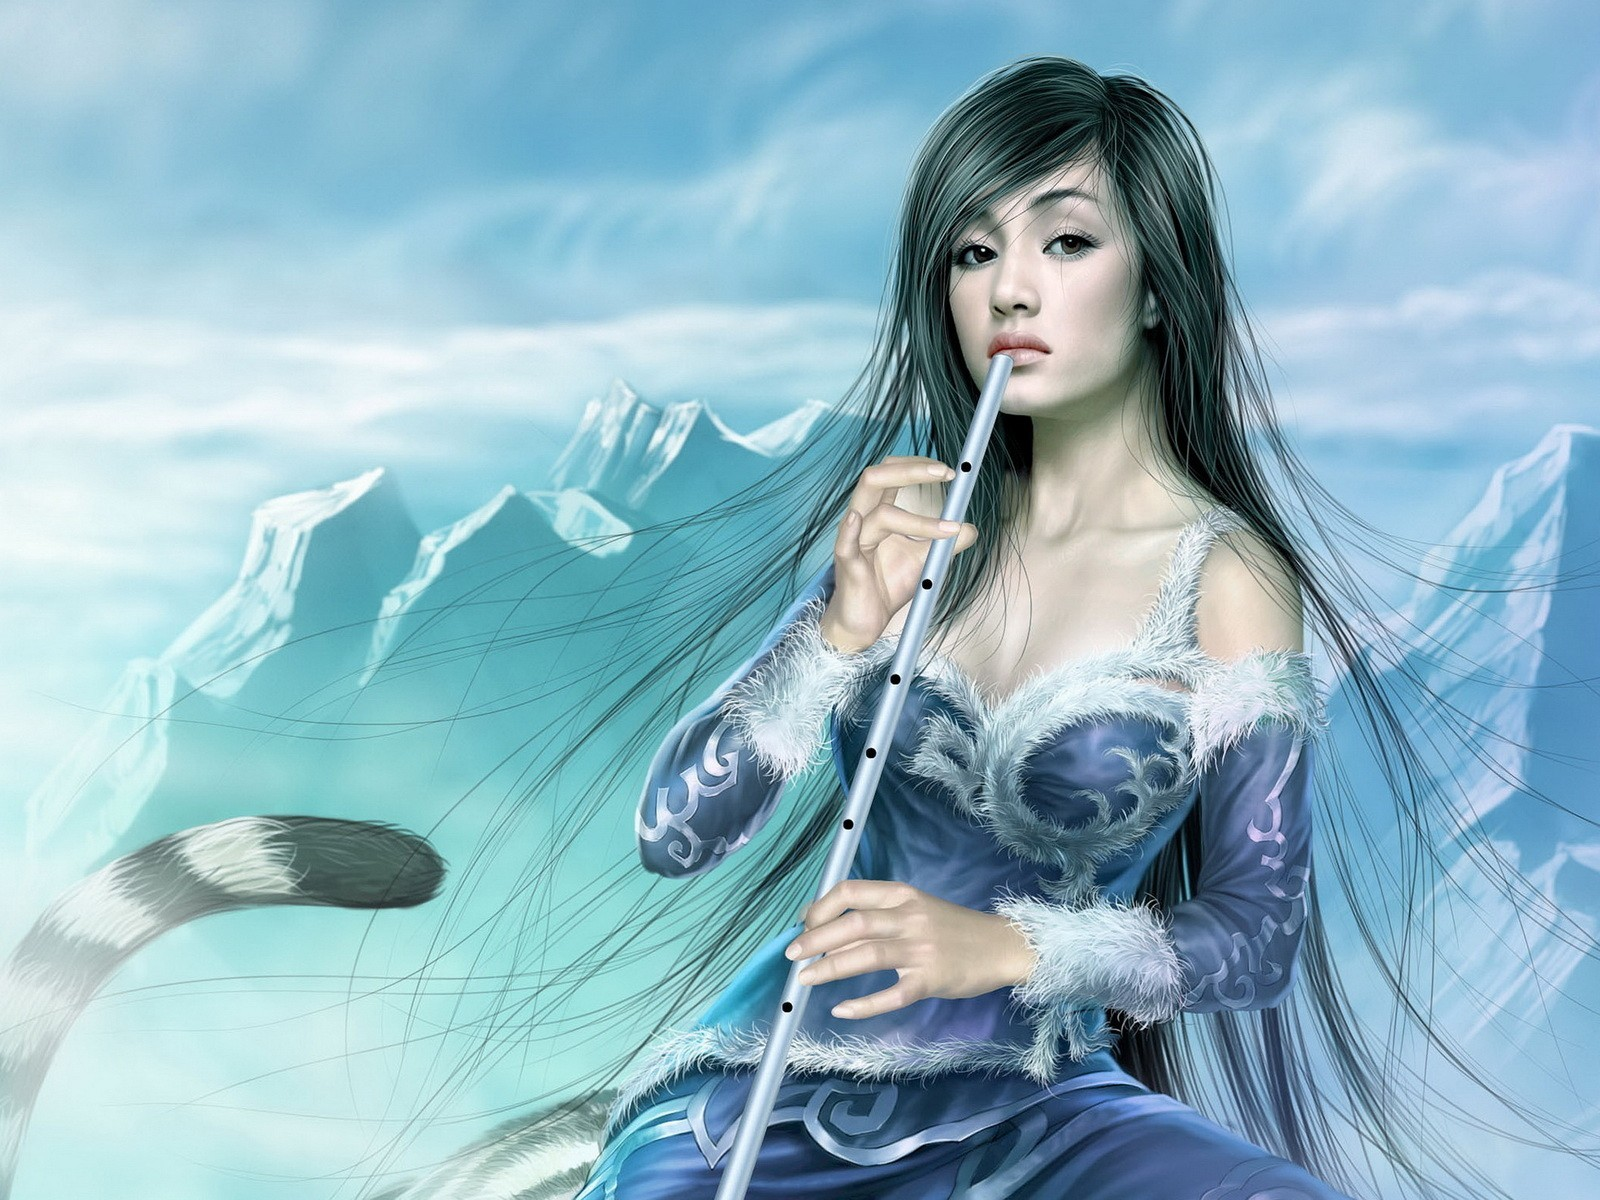 woman fantasy art flute HD Wallpaper